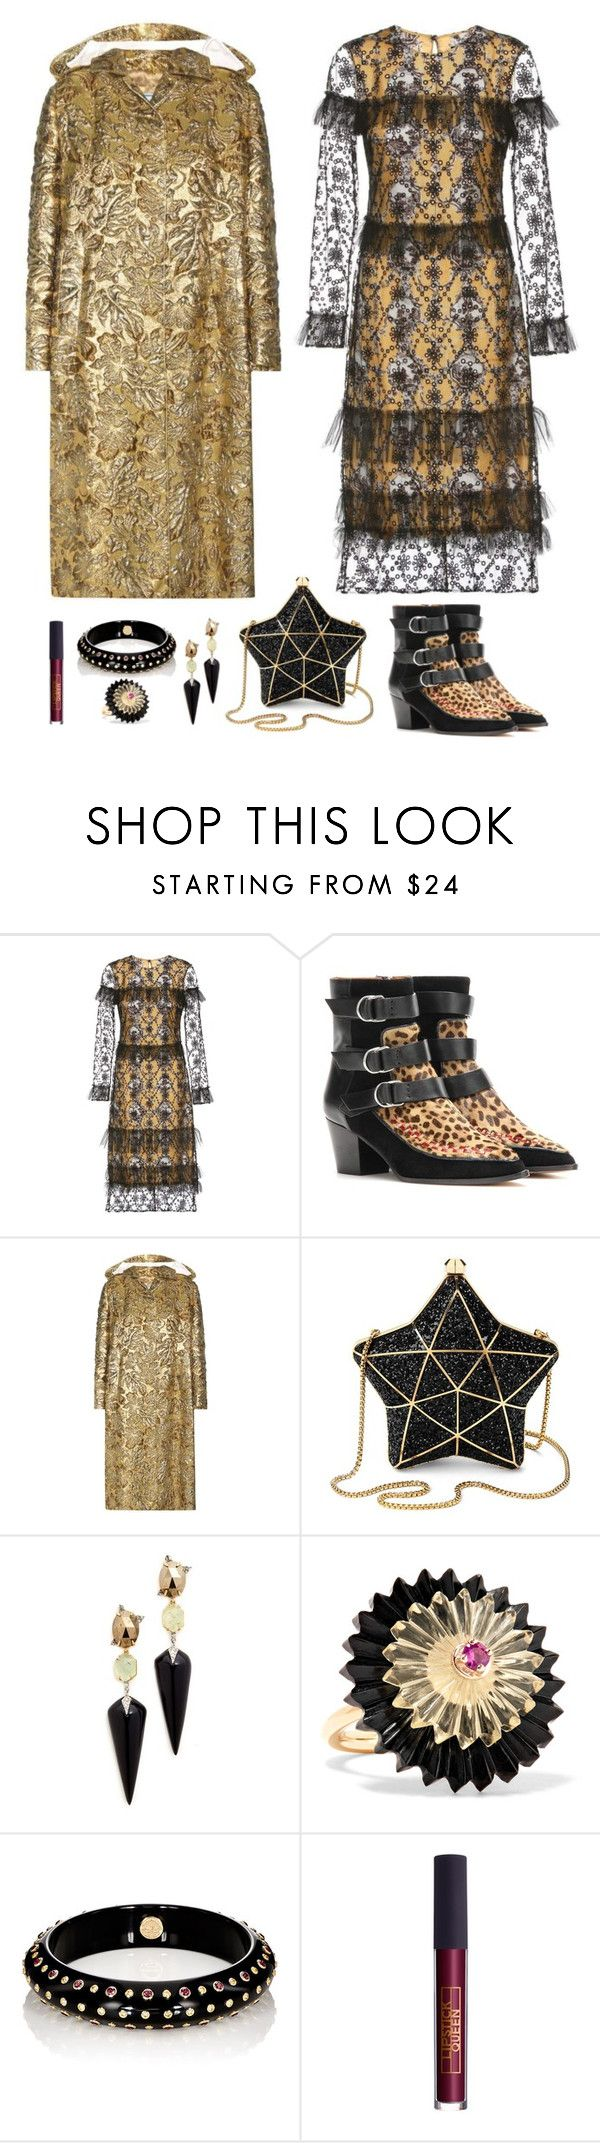 """Happy New Year!!"" by musicfriend1 ❤ liked on Polyvore featuring Burberry, Isabel Marant, Prada, Aspinal of London, Alexis Bittar, Alice Cicolini, Mark Davis and Lipstick Queen"